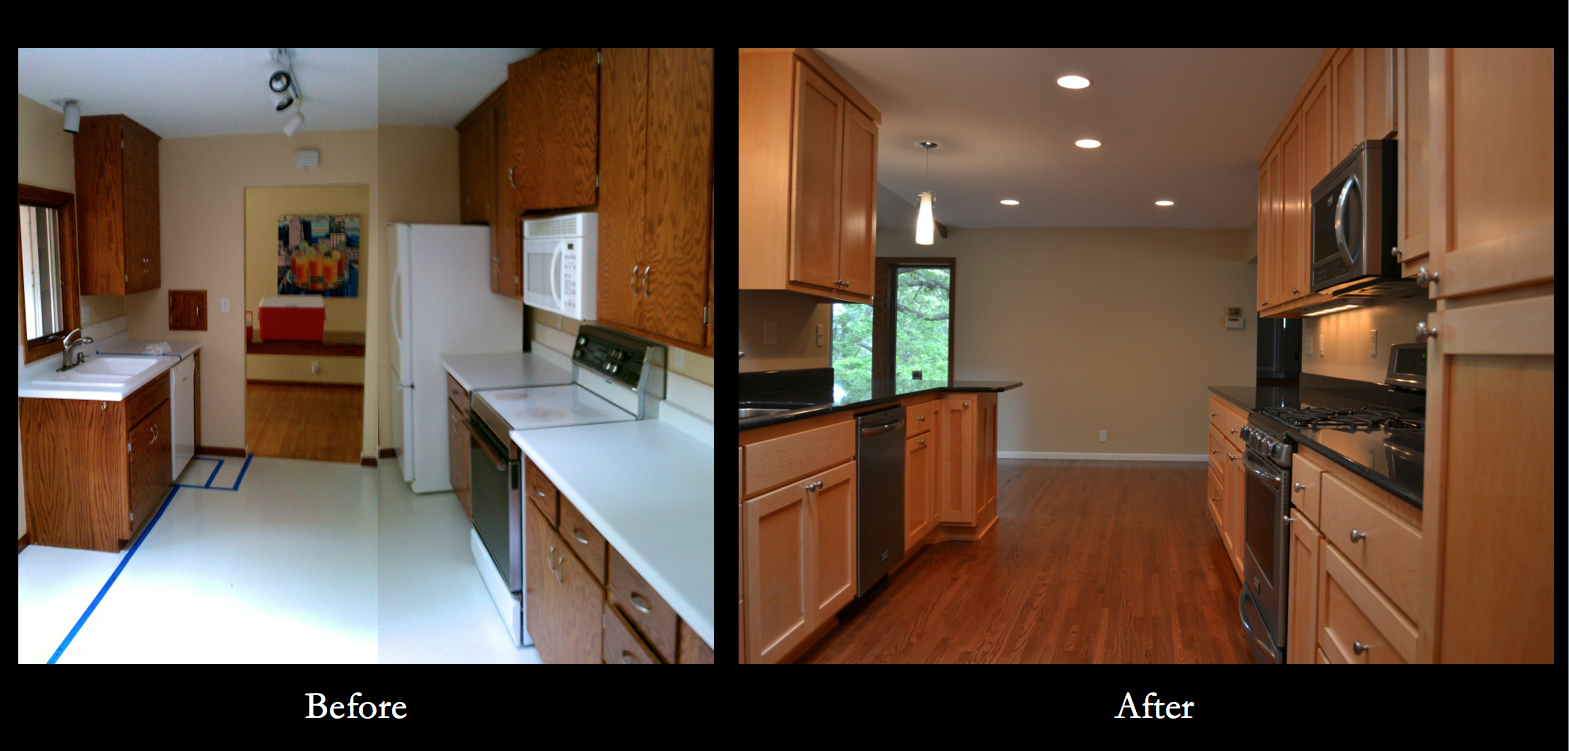 Kitchen Remodel Before And After Small Kitchen Remodels Before After  Kitchen Remodel Before And